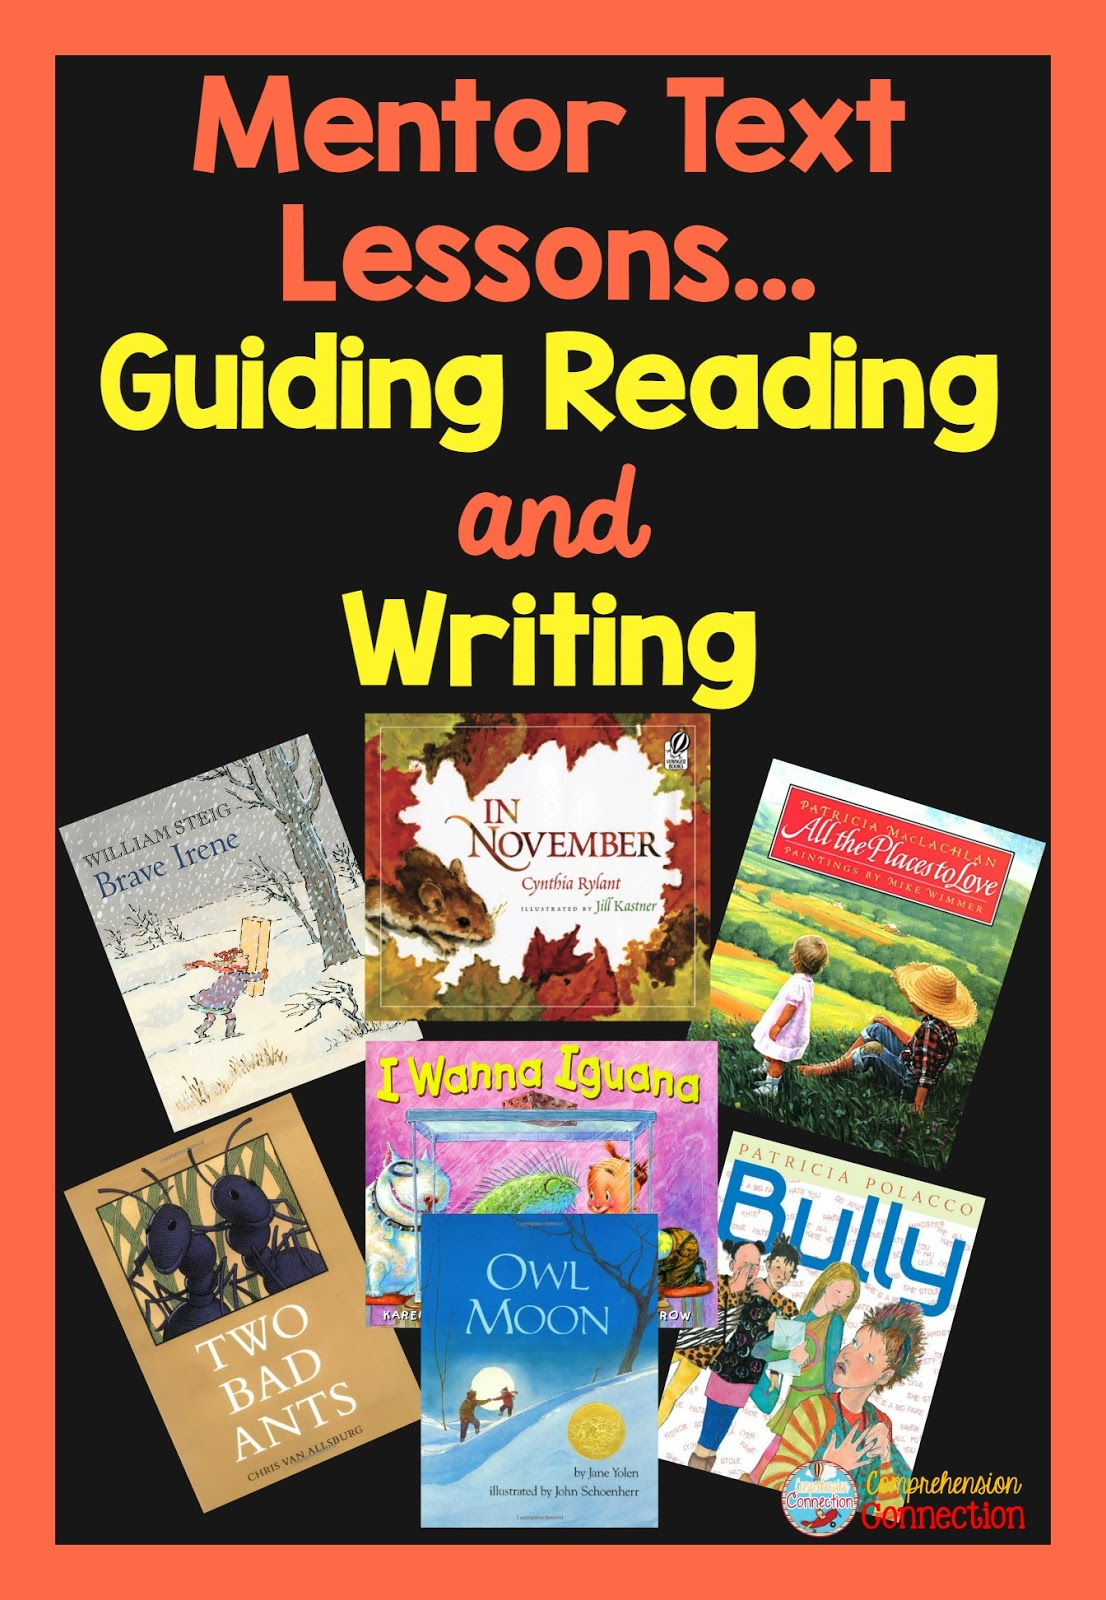 Using mentor text lessons is a great way to expose your students to great literature and model with Think Aloud comprehension skills your students need. Check out this post to learn how mentor texts can help you